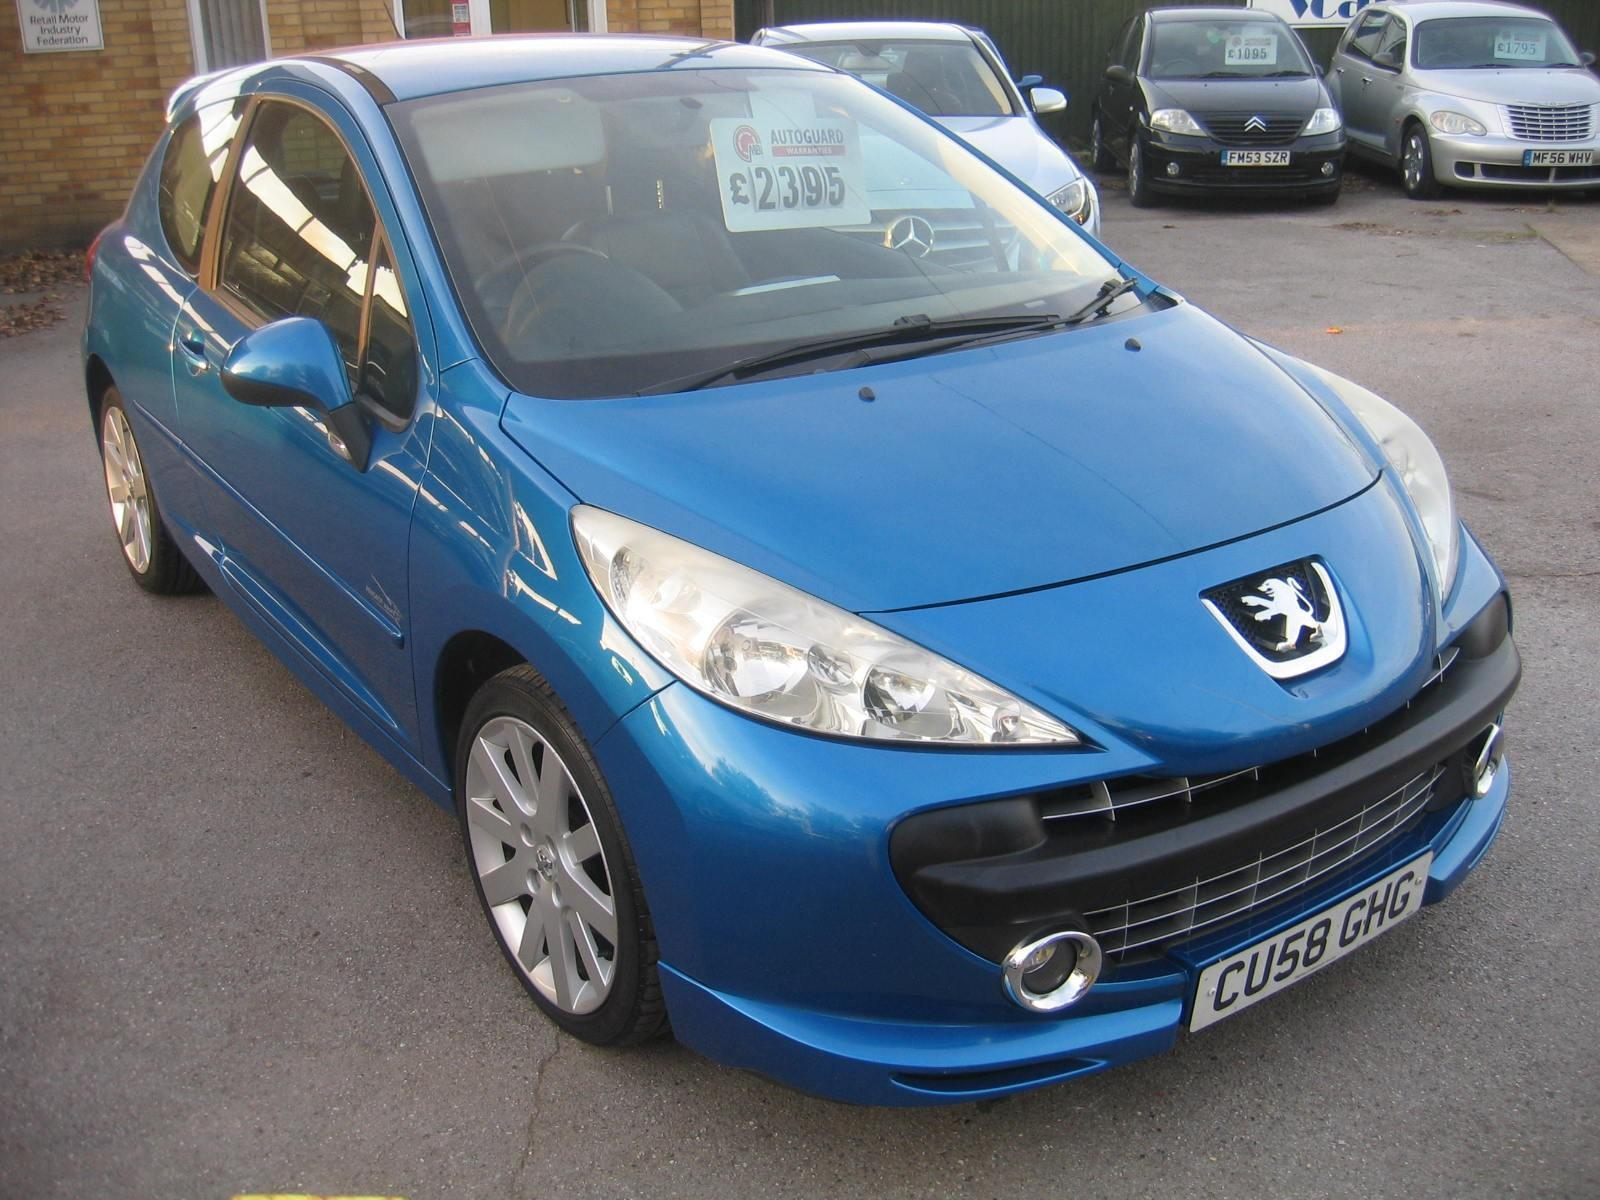 used 2008 peugeot 207 1.6 thp 150 sport xs, sporty hatchback 1.6